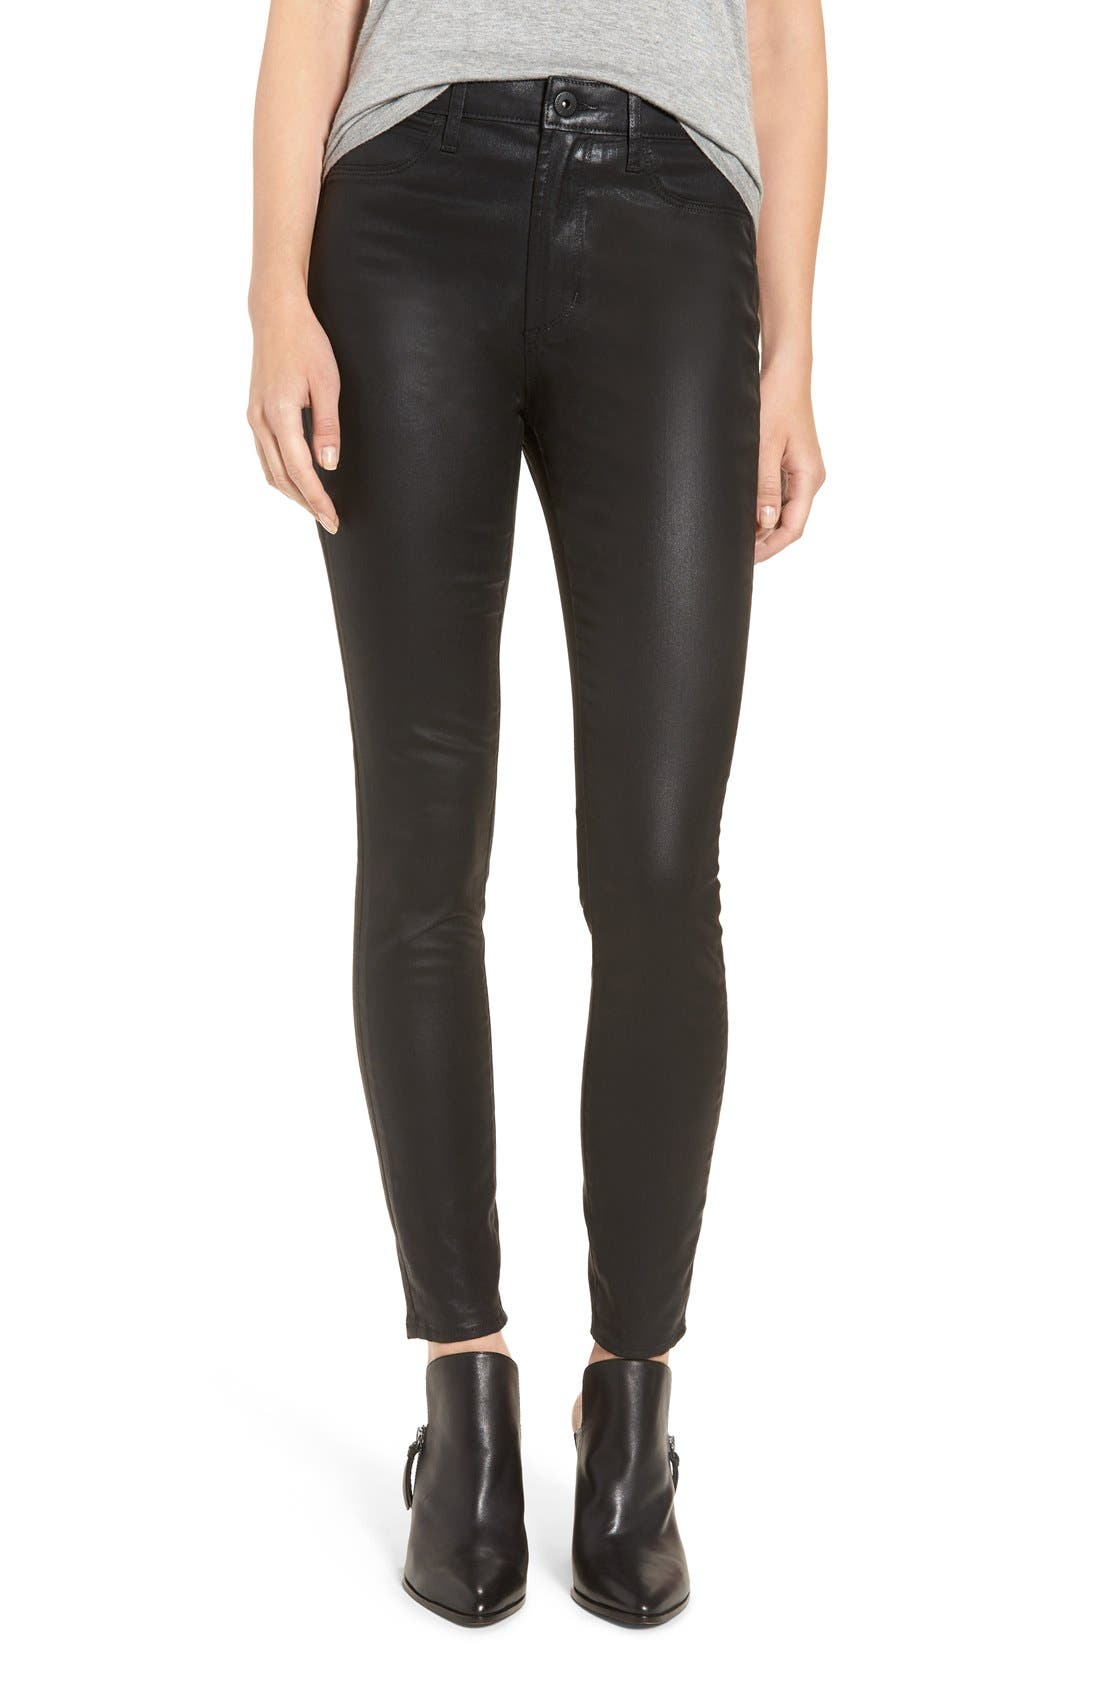 Alternate Image 1 Selected - Articles of Society 'Hailey' High Rise Coated Skinny Jeans